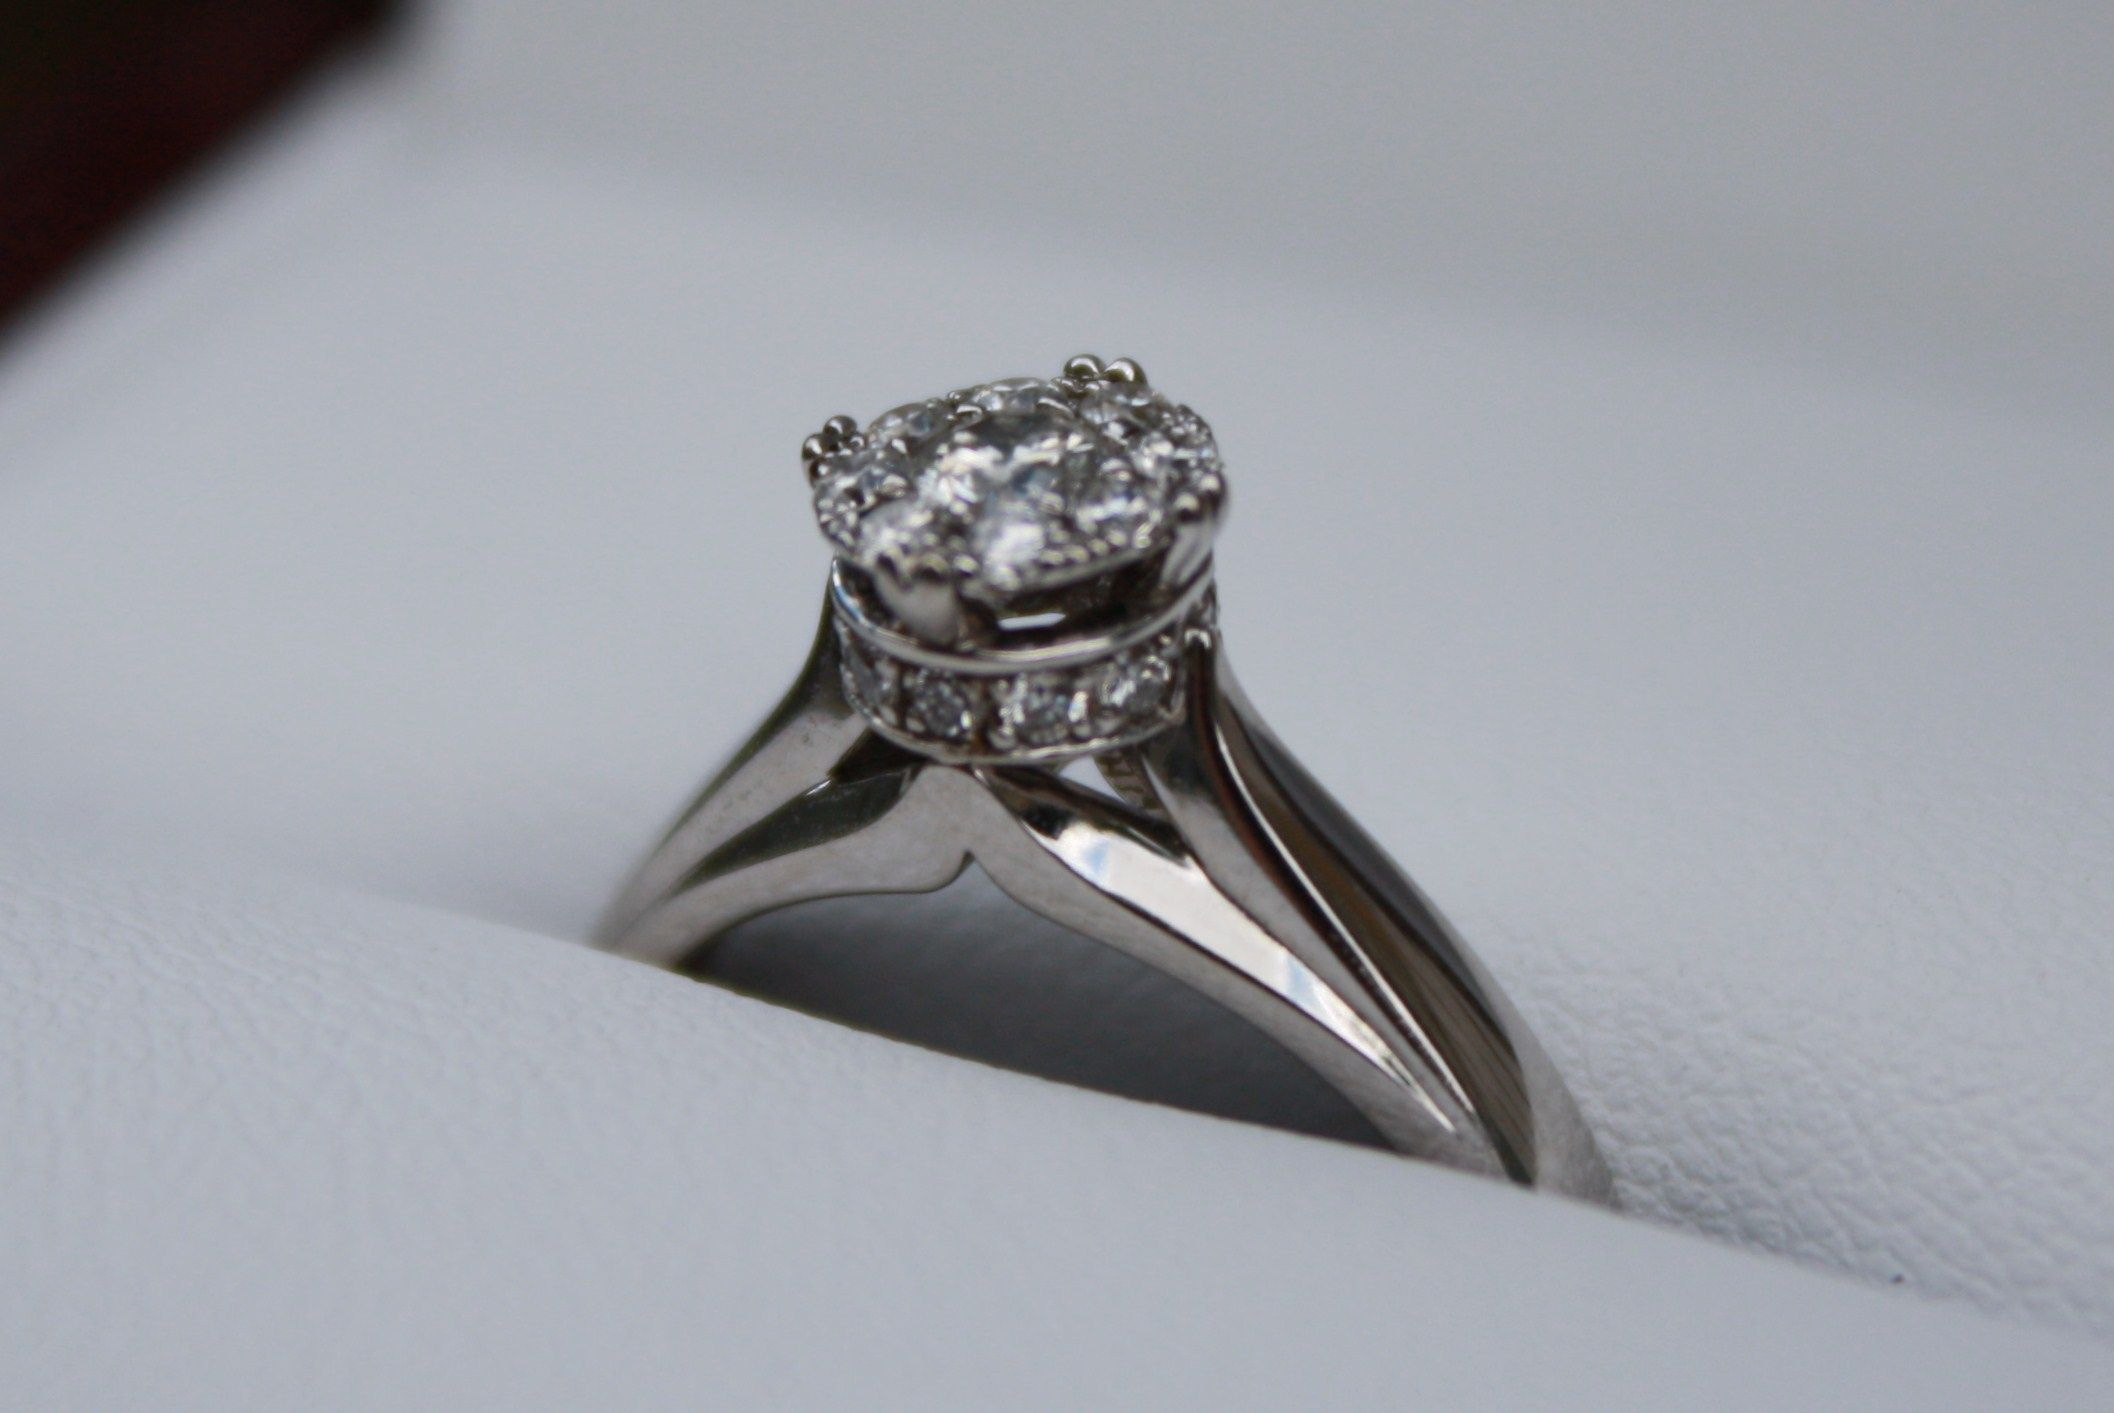 On August 5th 2012 the man of my dreams proposed! This is my engagment ring